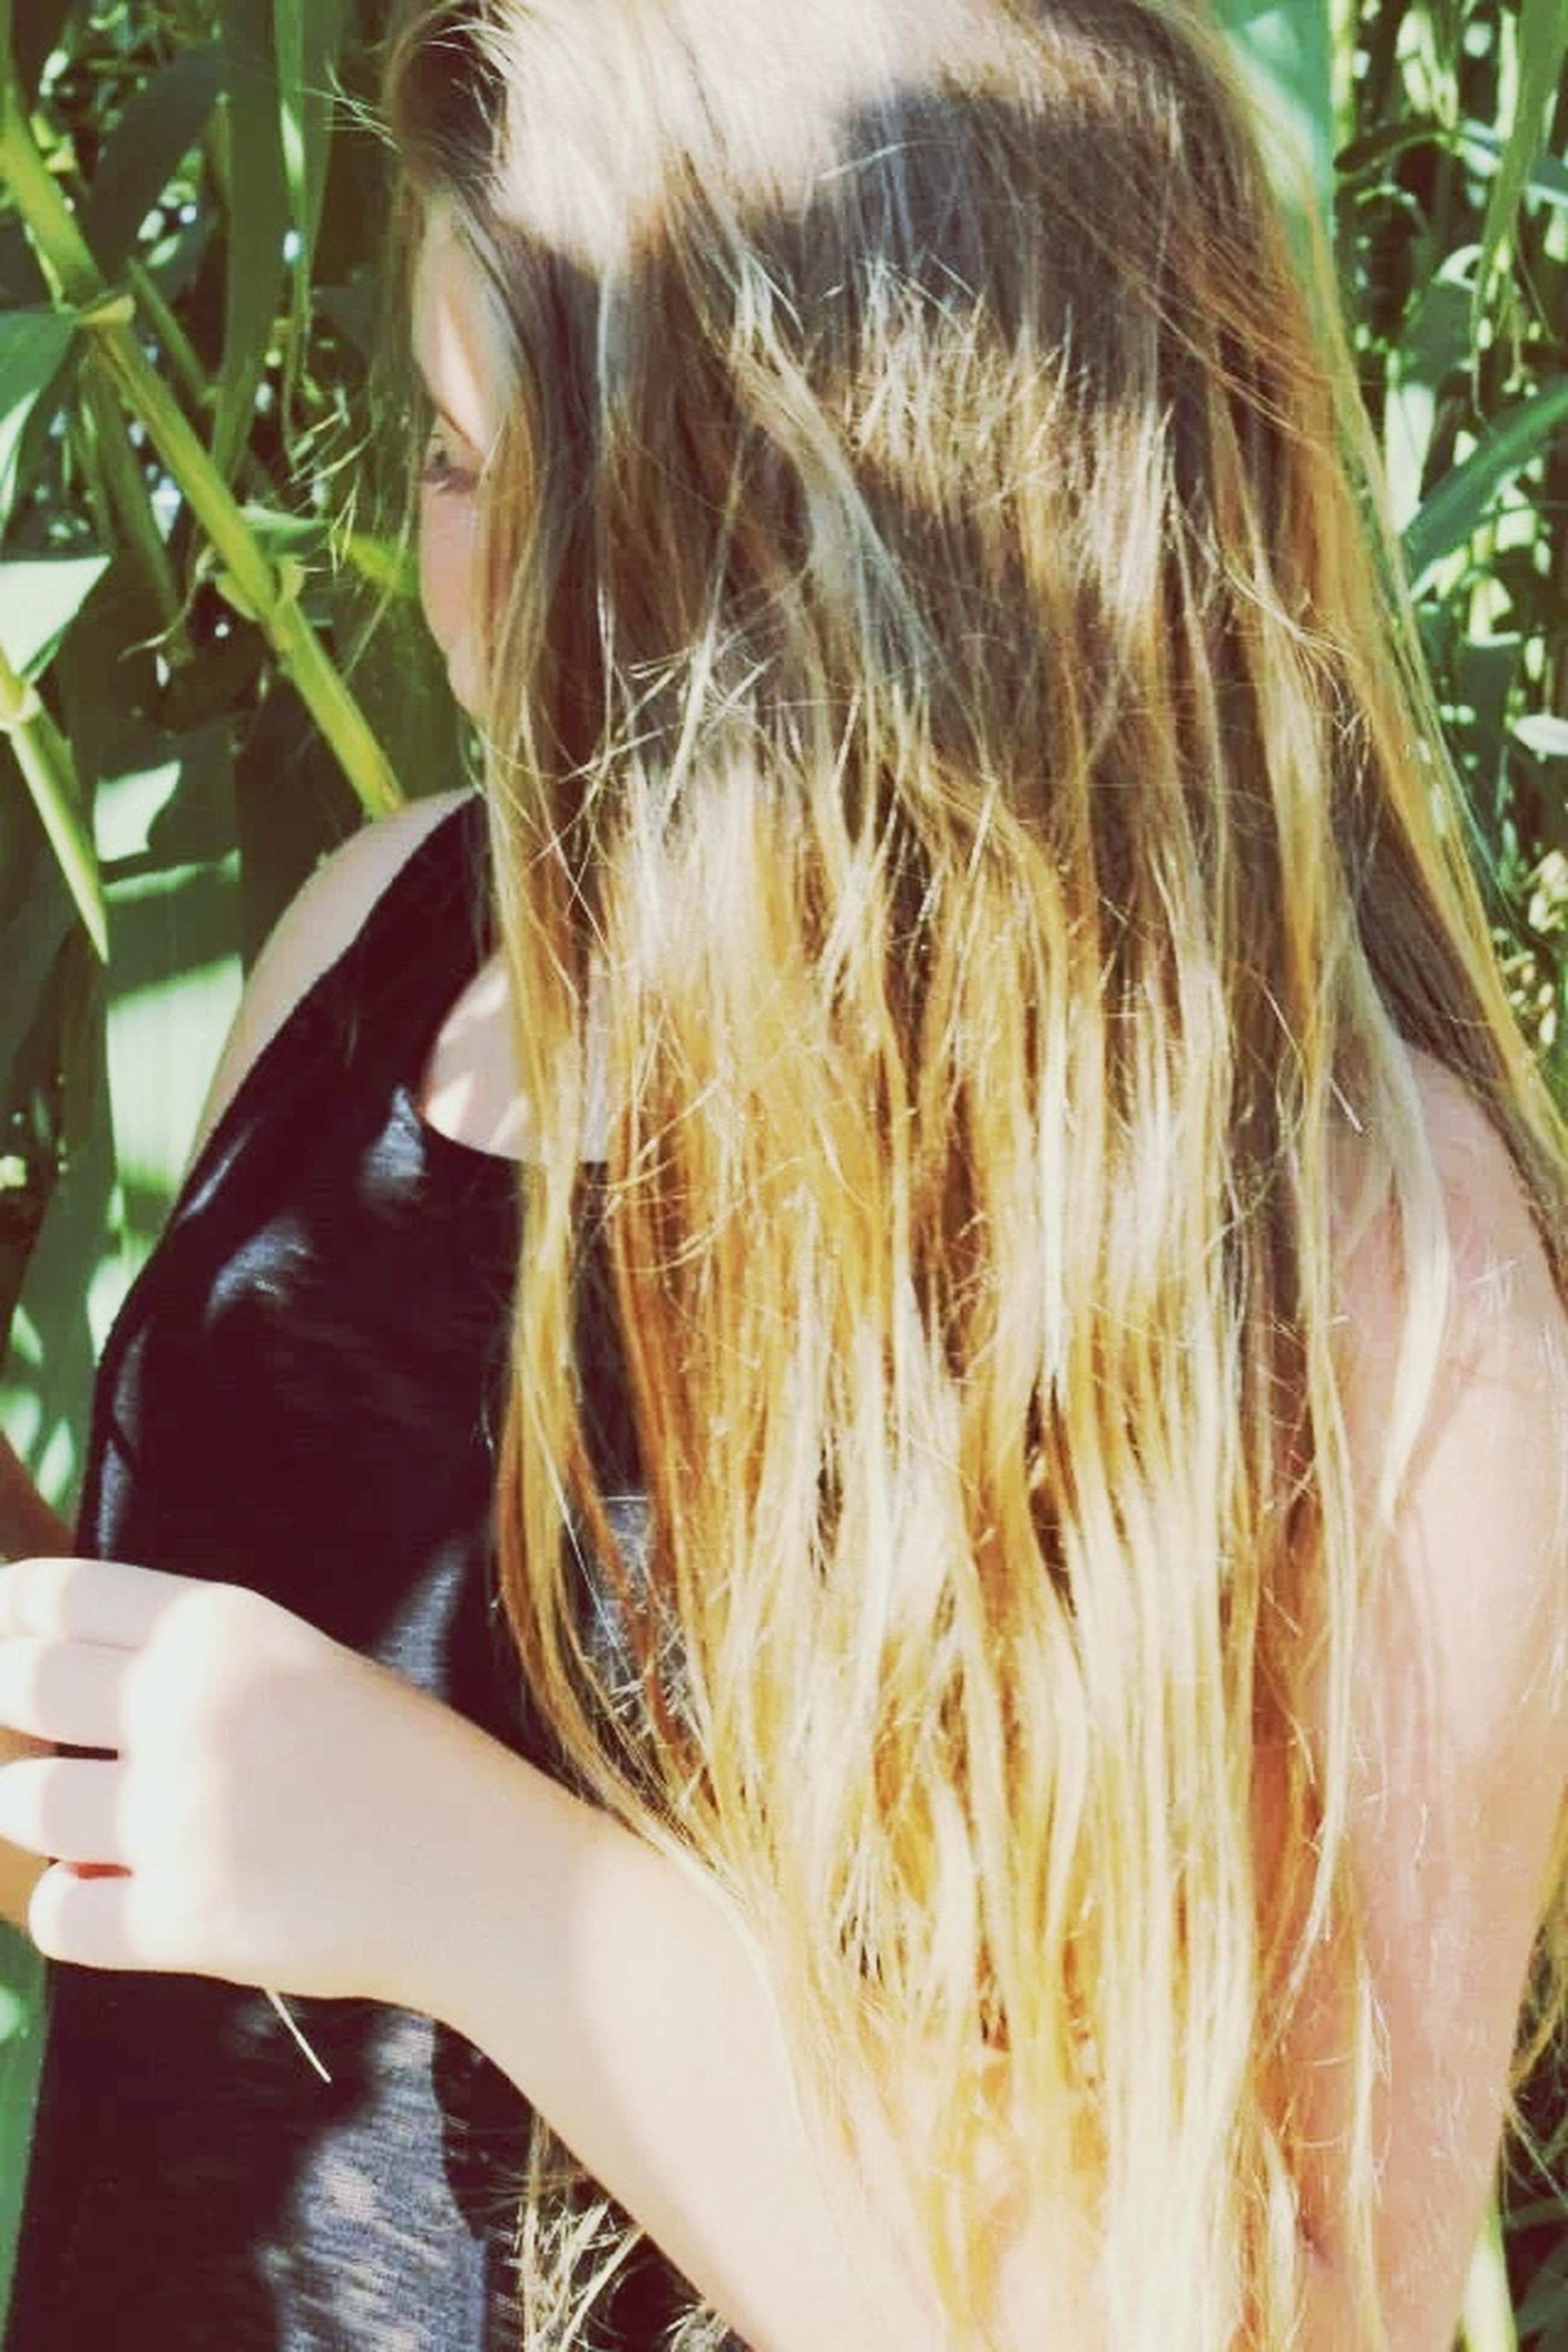 lifestyles, leisure activity, long hair, person, headshot, close-up, part of, human hair, holding, young women, brown hair, blond hair, cropped, focus on foreground, day